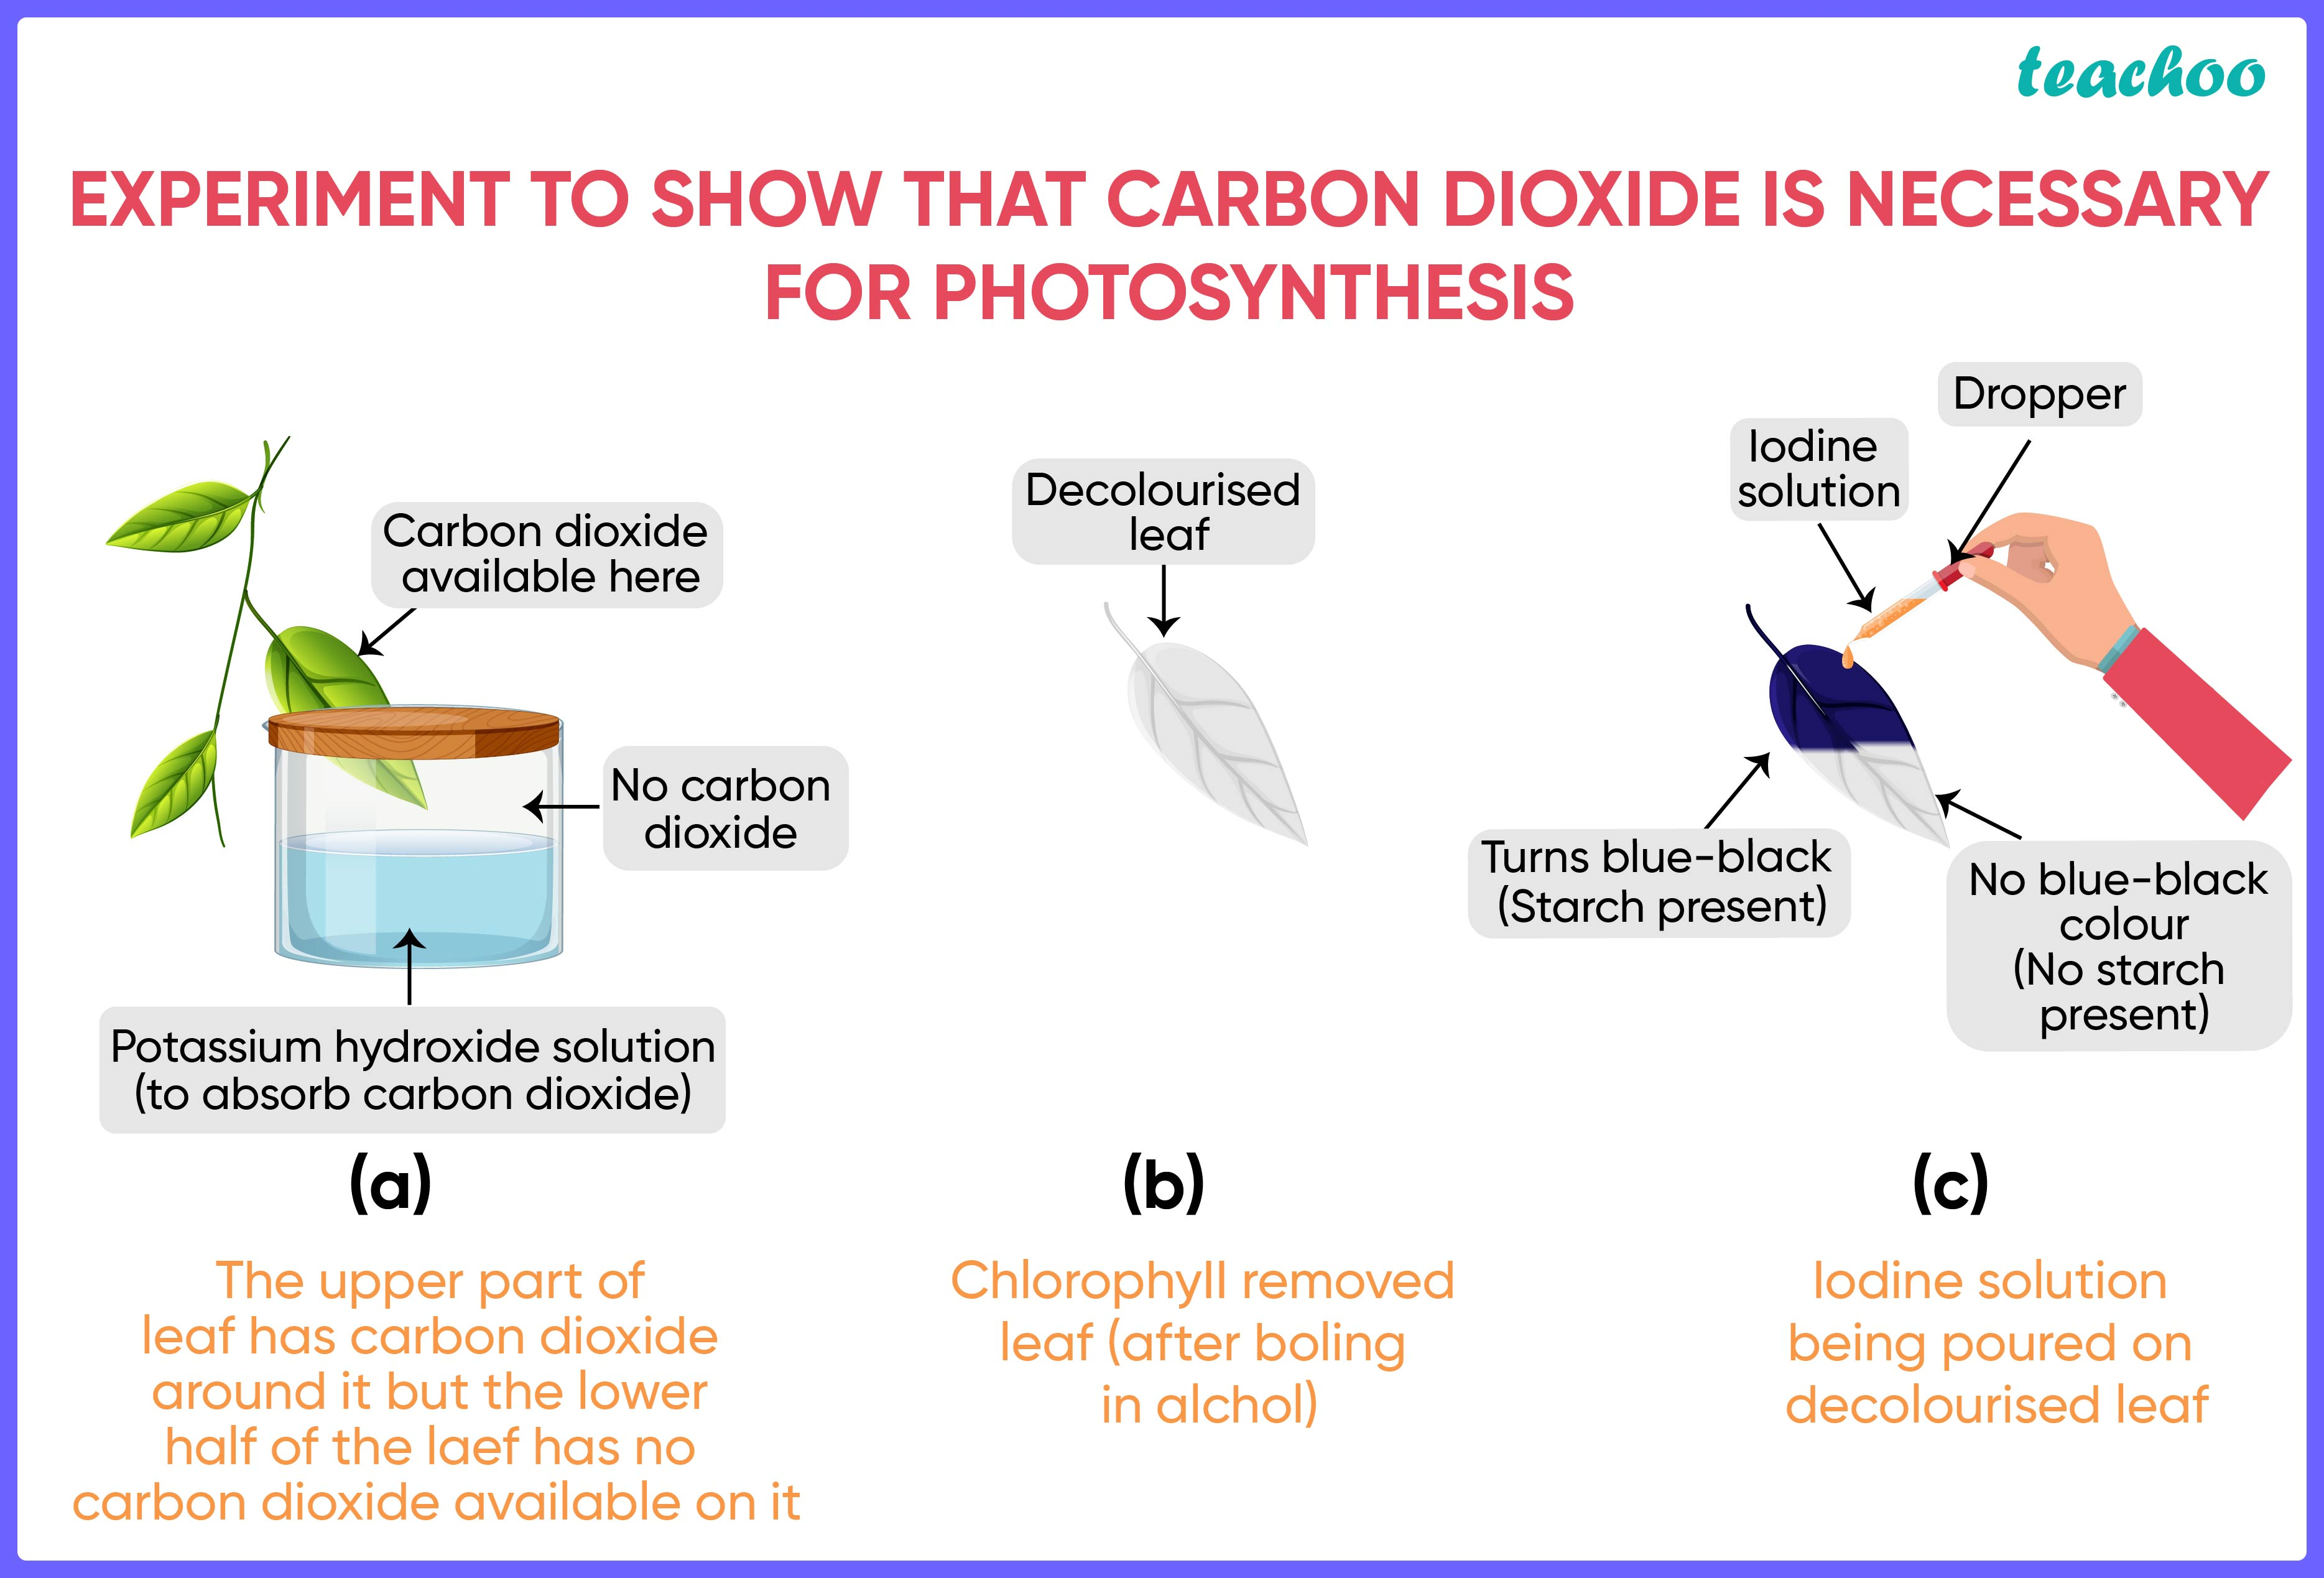 Carbon dioxide is necessary for photosynthesis-01.jpg